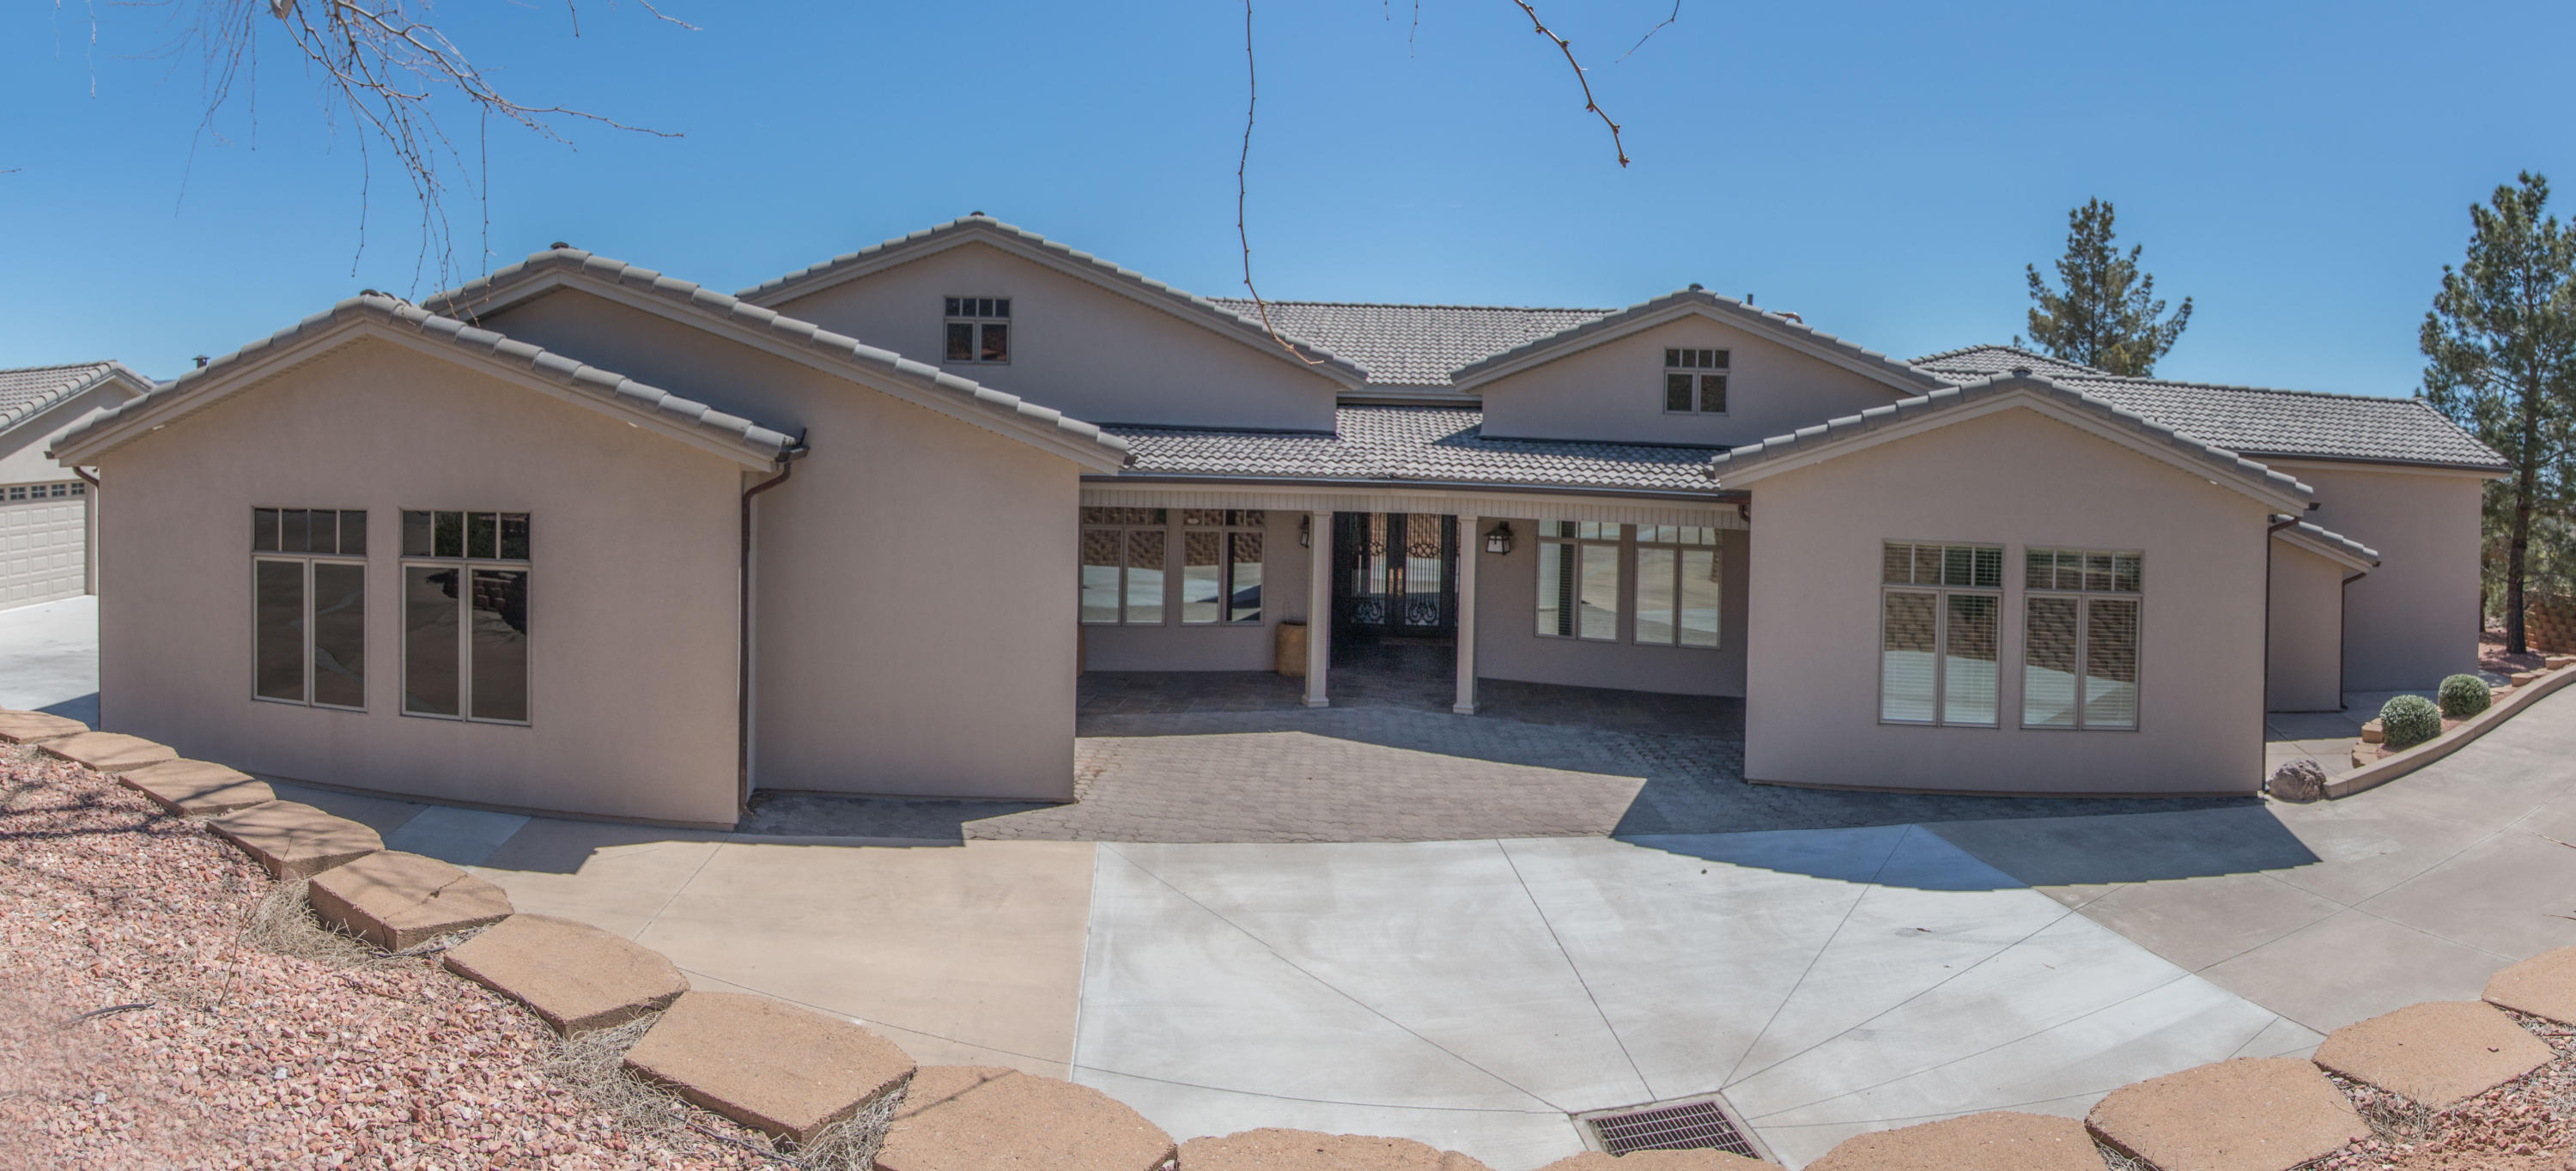 85857 1334 Mountain Shadow DR Leeds UT